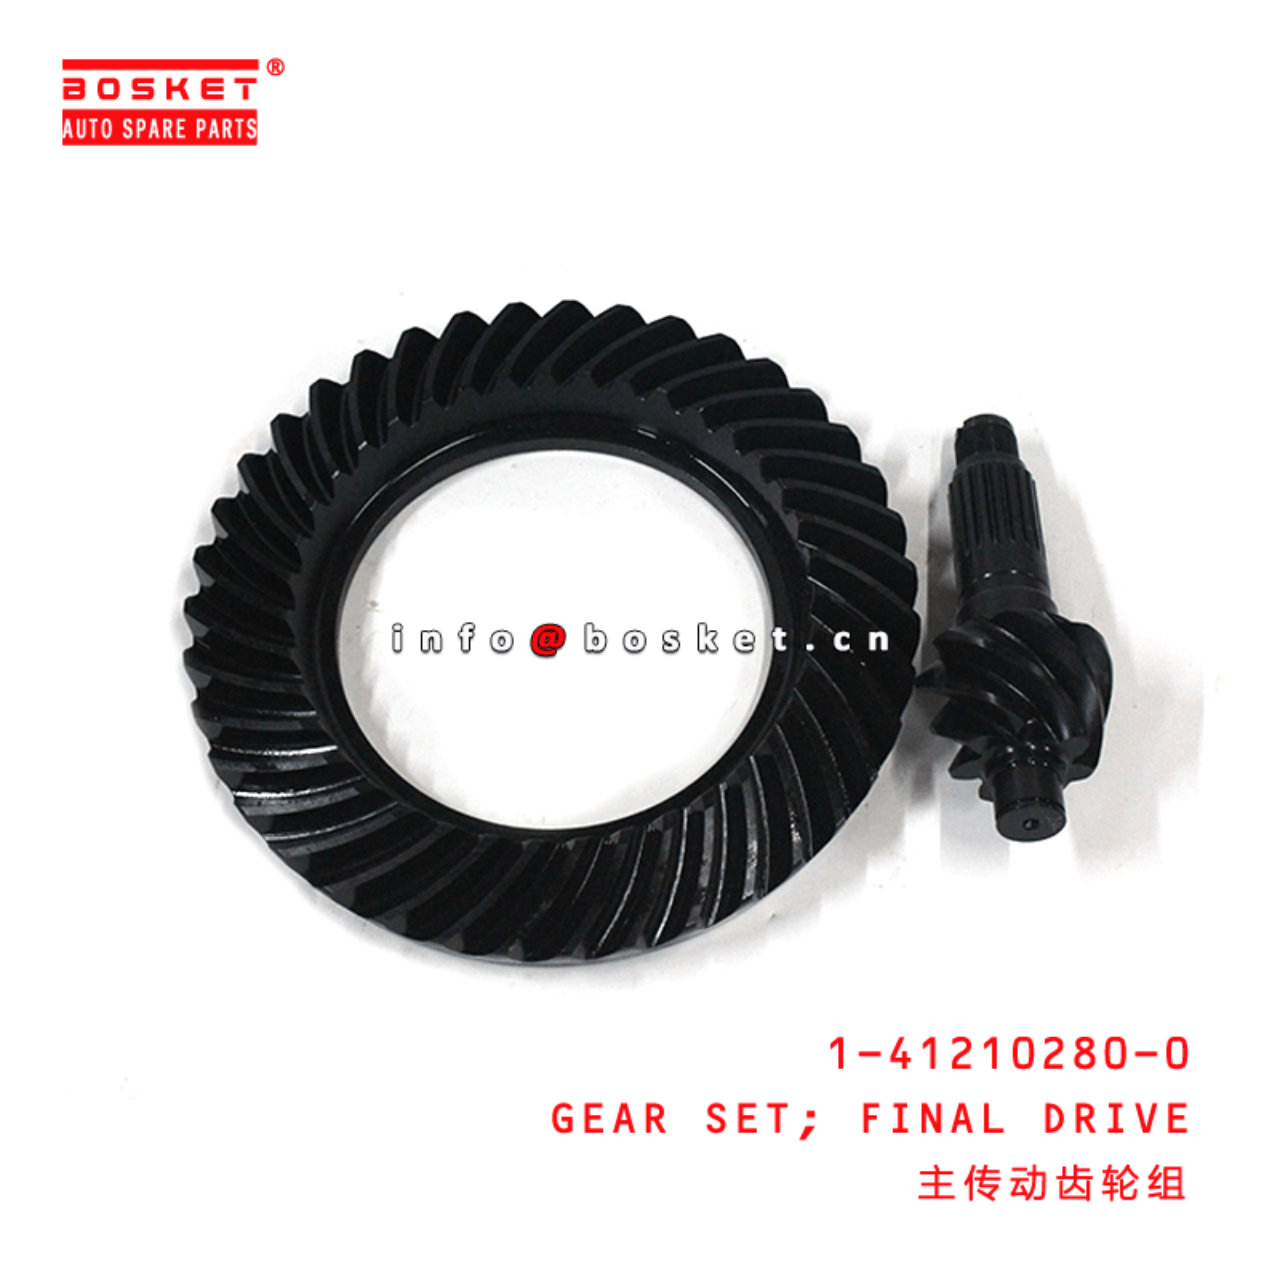 1-41210280-0 Final Drive Gear Set 1412102800 Suitable for ISUZU XD